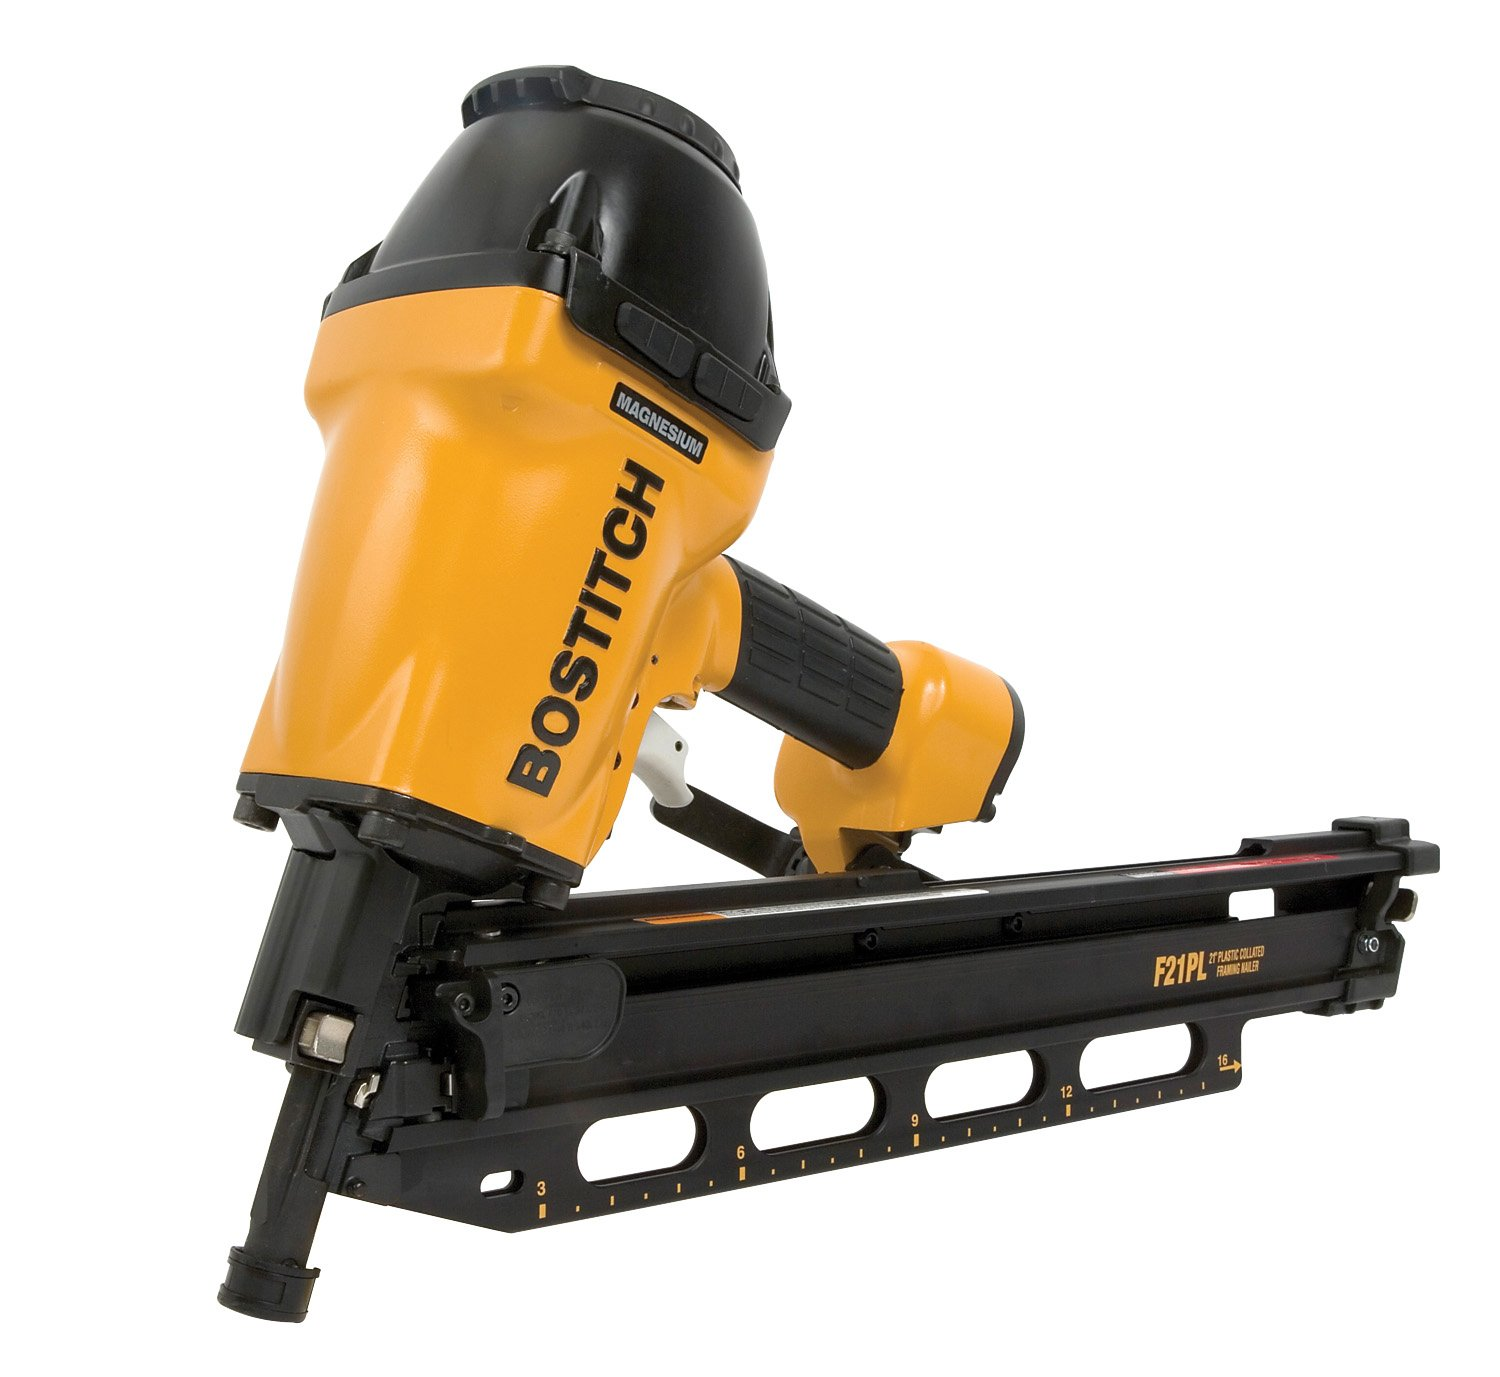 2. <strong>Bostitch F21PL Framing Nailer - Best Framing Nailer</strong>